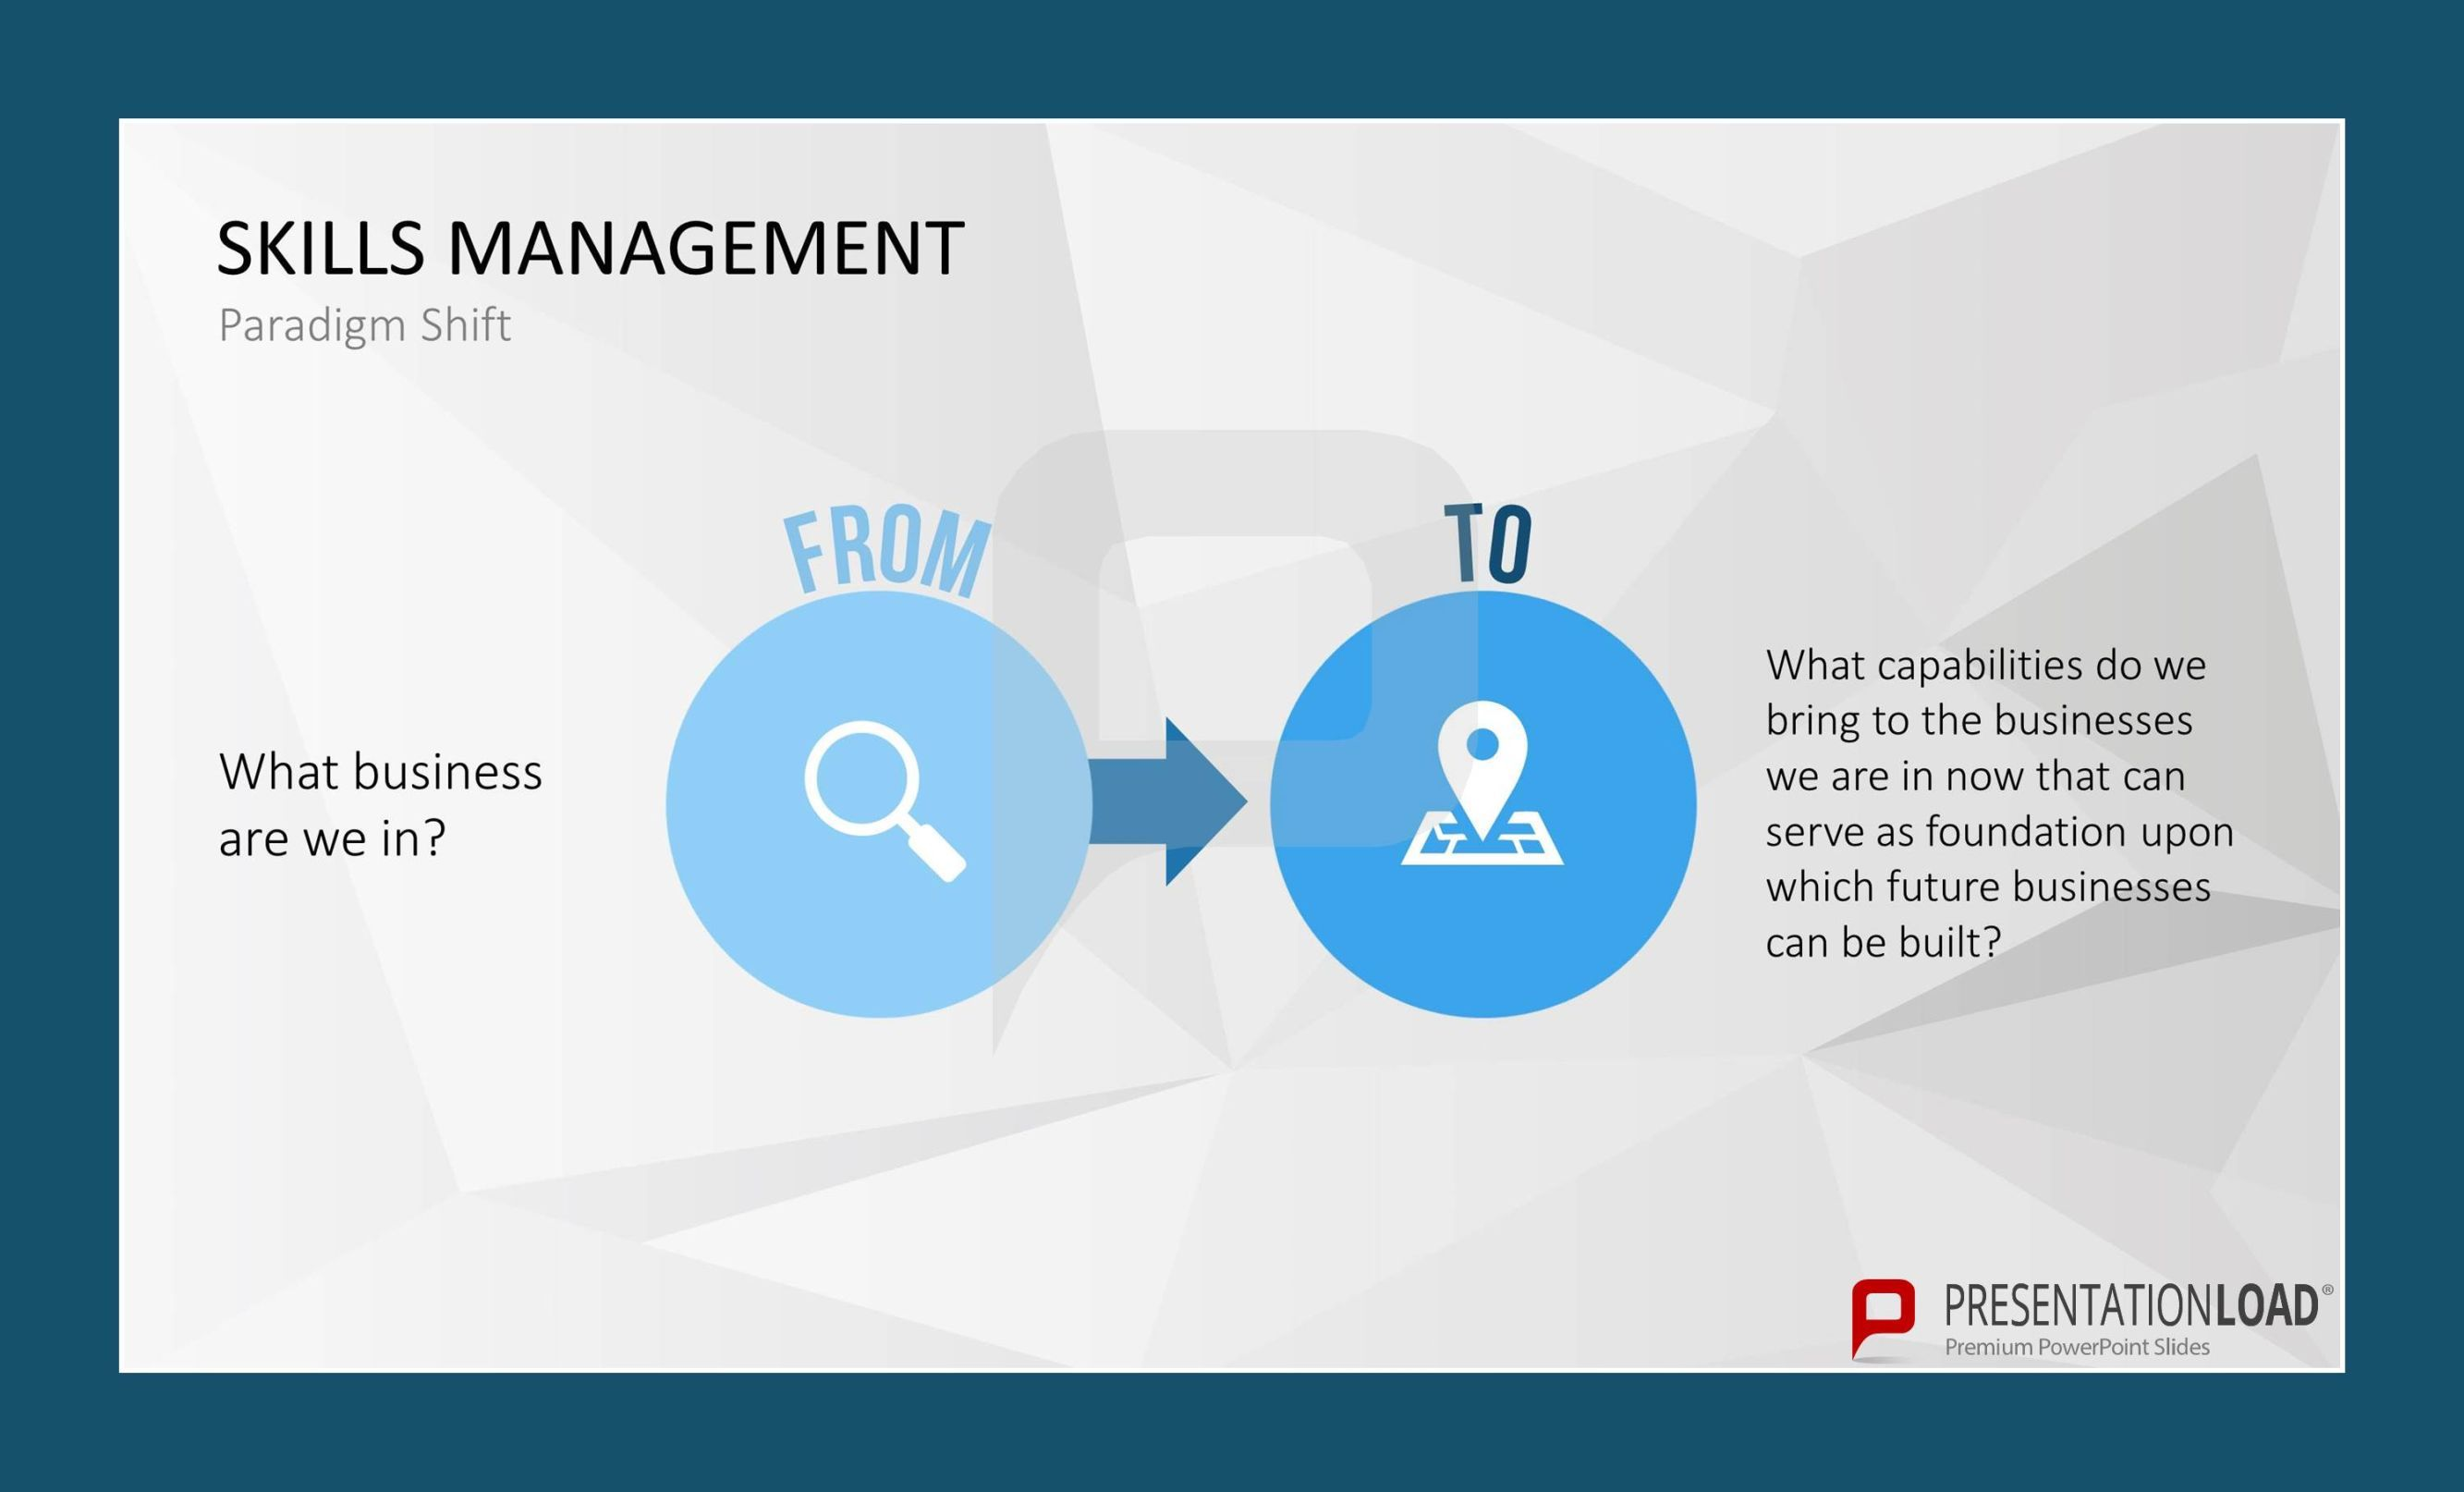 SKILLS MANAGEMENT Paradigm Shift: FROM What business are we in? TO ...